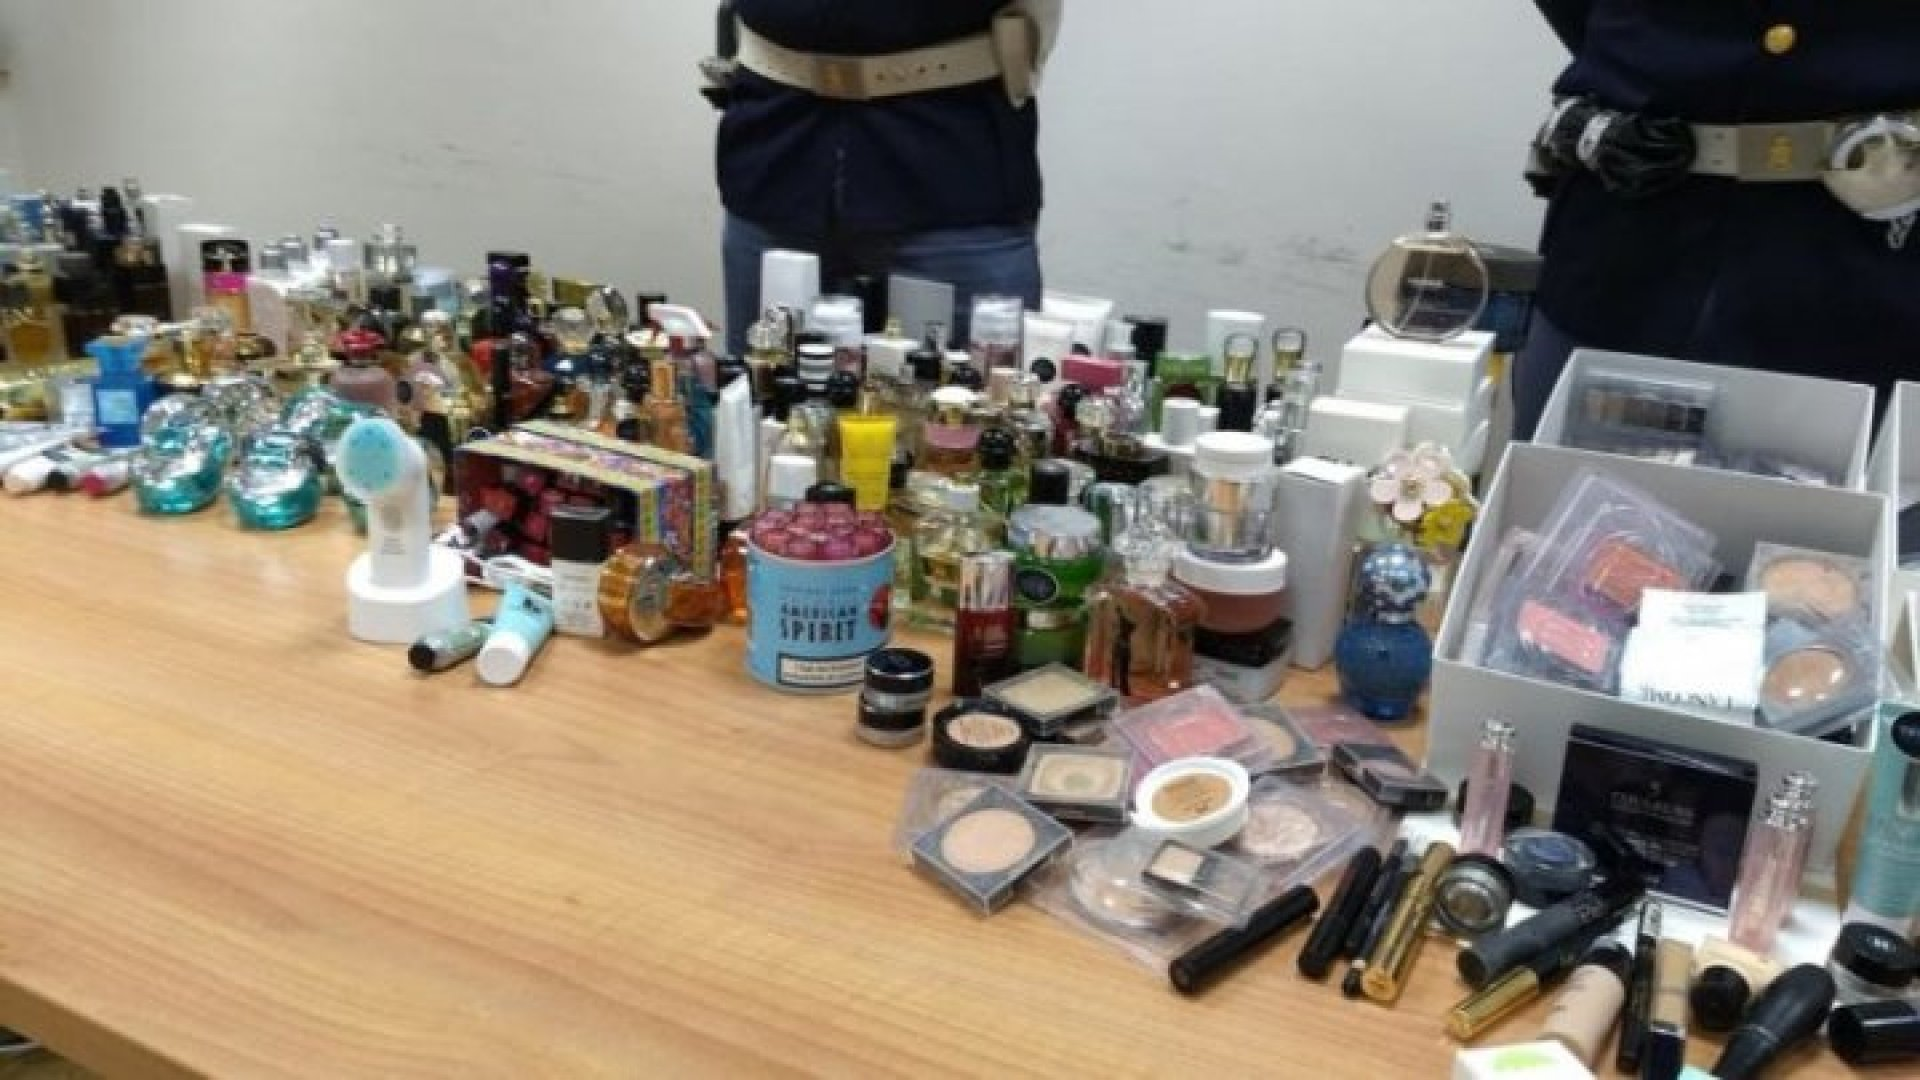 A Moldovan And Two Colleagues Caught Stealing Perfumes From A Duty